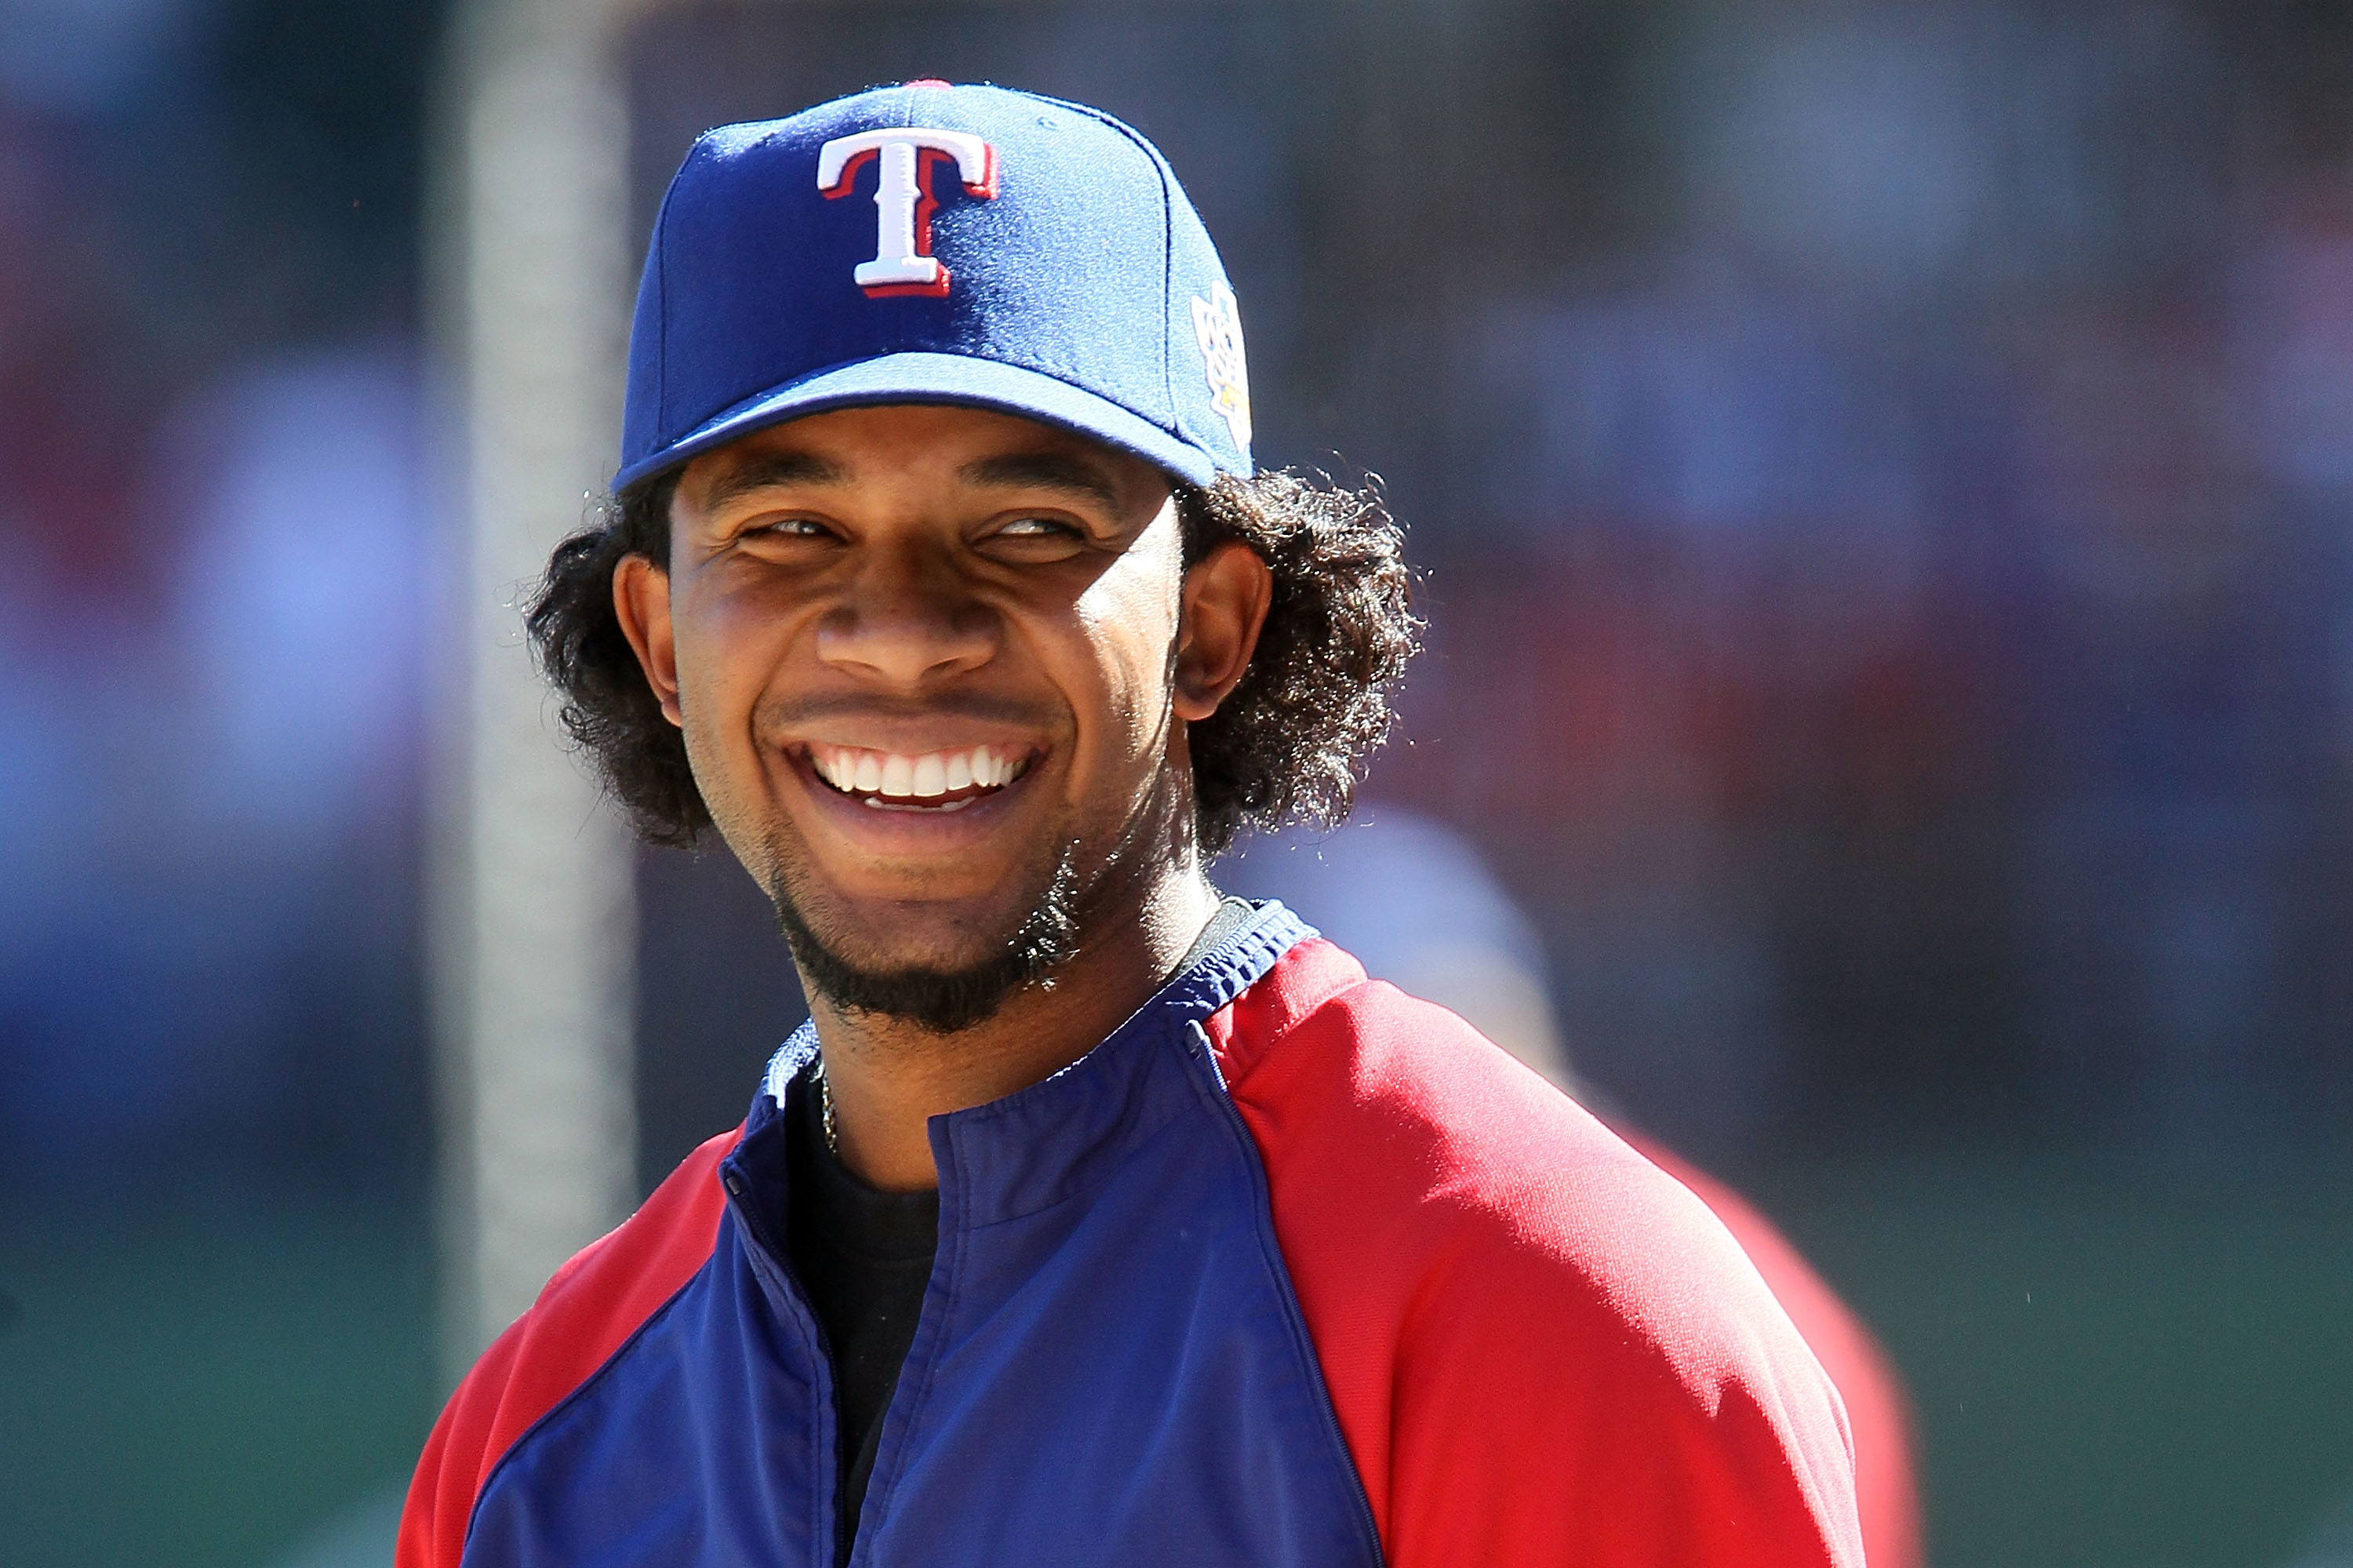 ARLINGTON, TX - OCTOBER 30:  Elvis Andrus #1 of the Texas Rangers looks on during batting practice against the San Francisco Giants in Game Three of the 2010 MLB World Series at Rangers Ballpark in Arlington on October 30, 2010 in Arlington, Texas.  (Phot